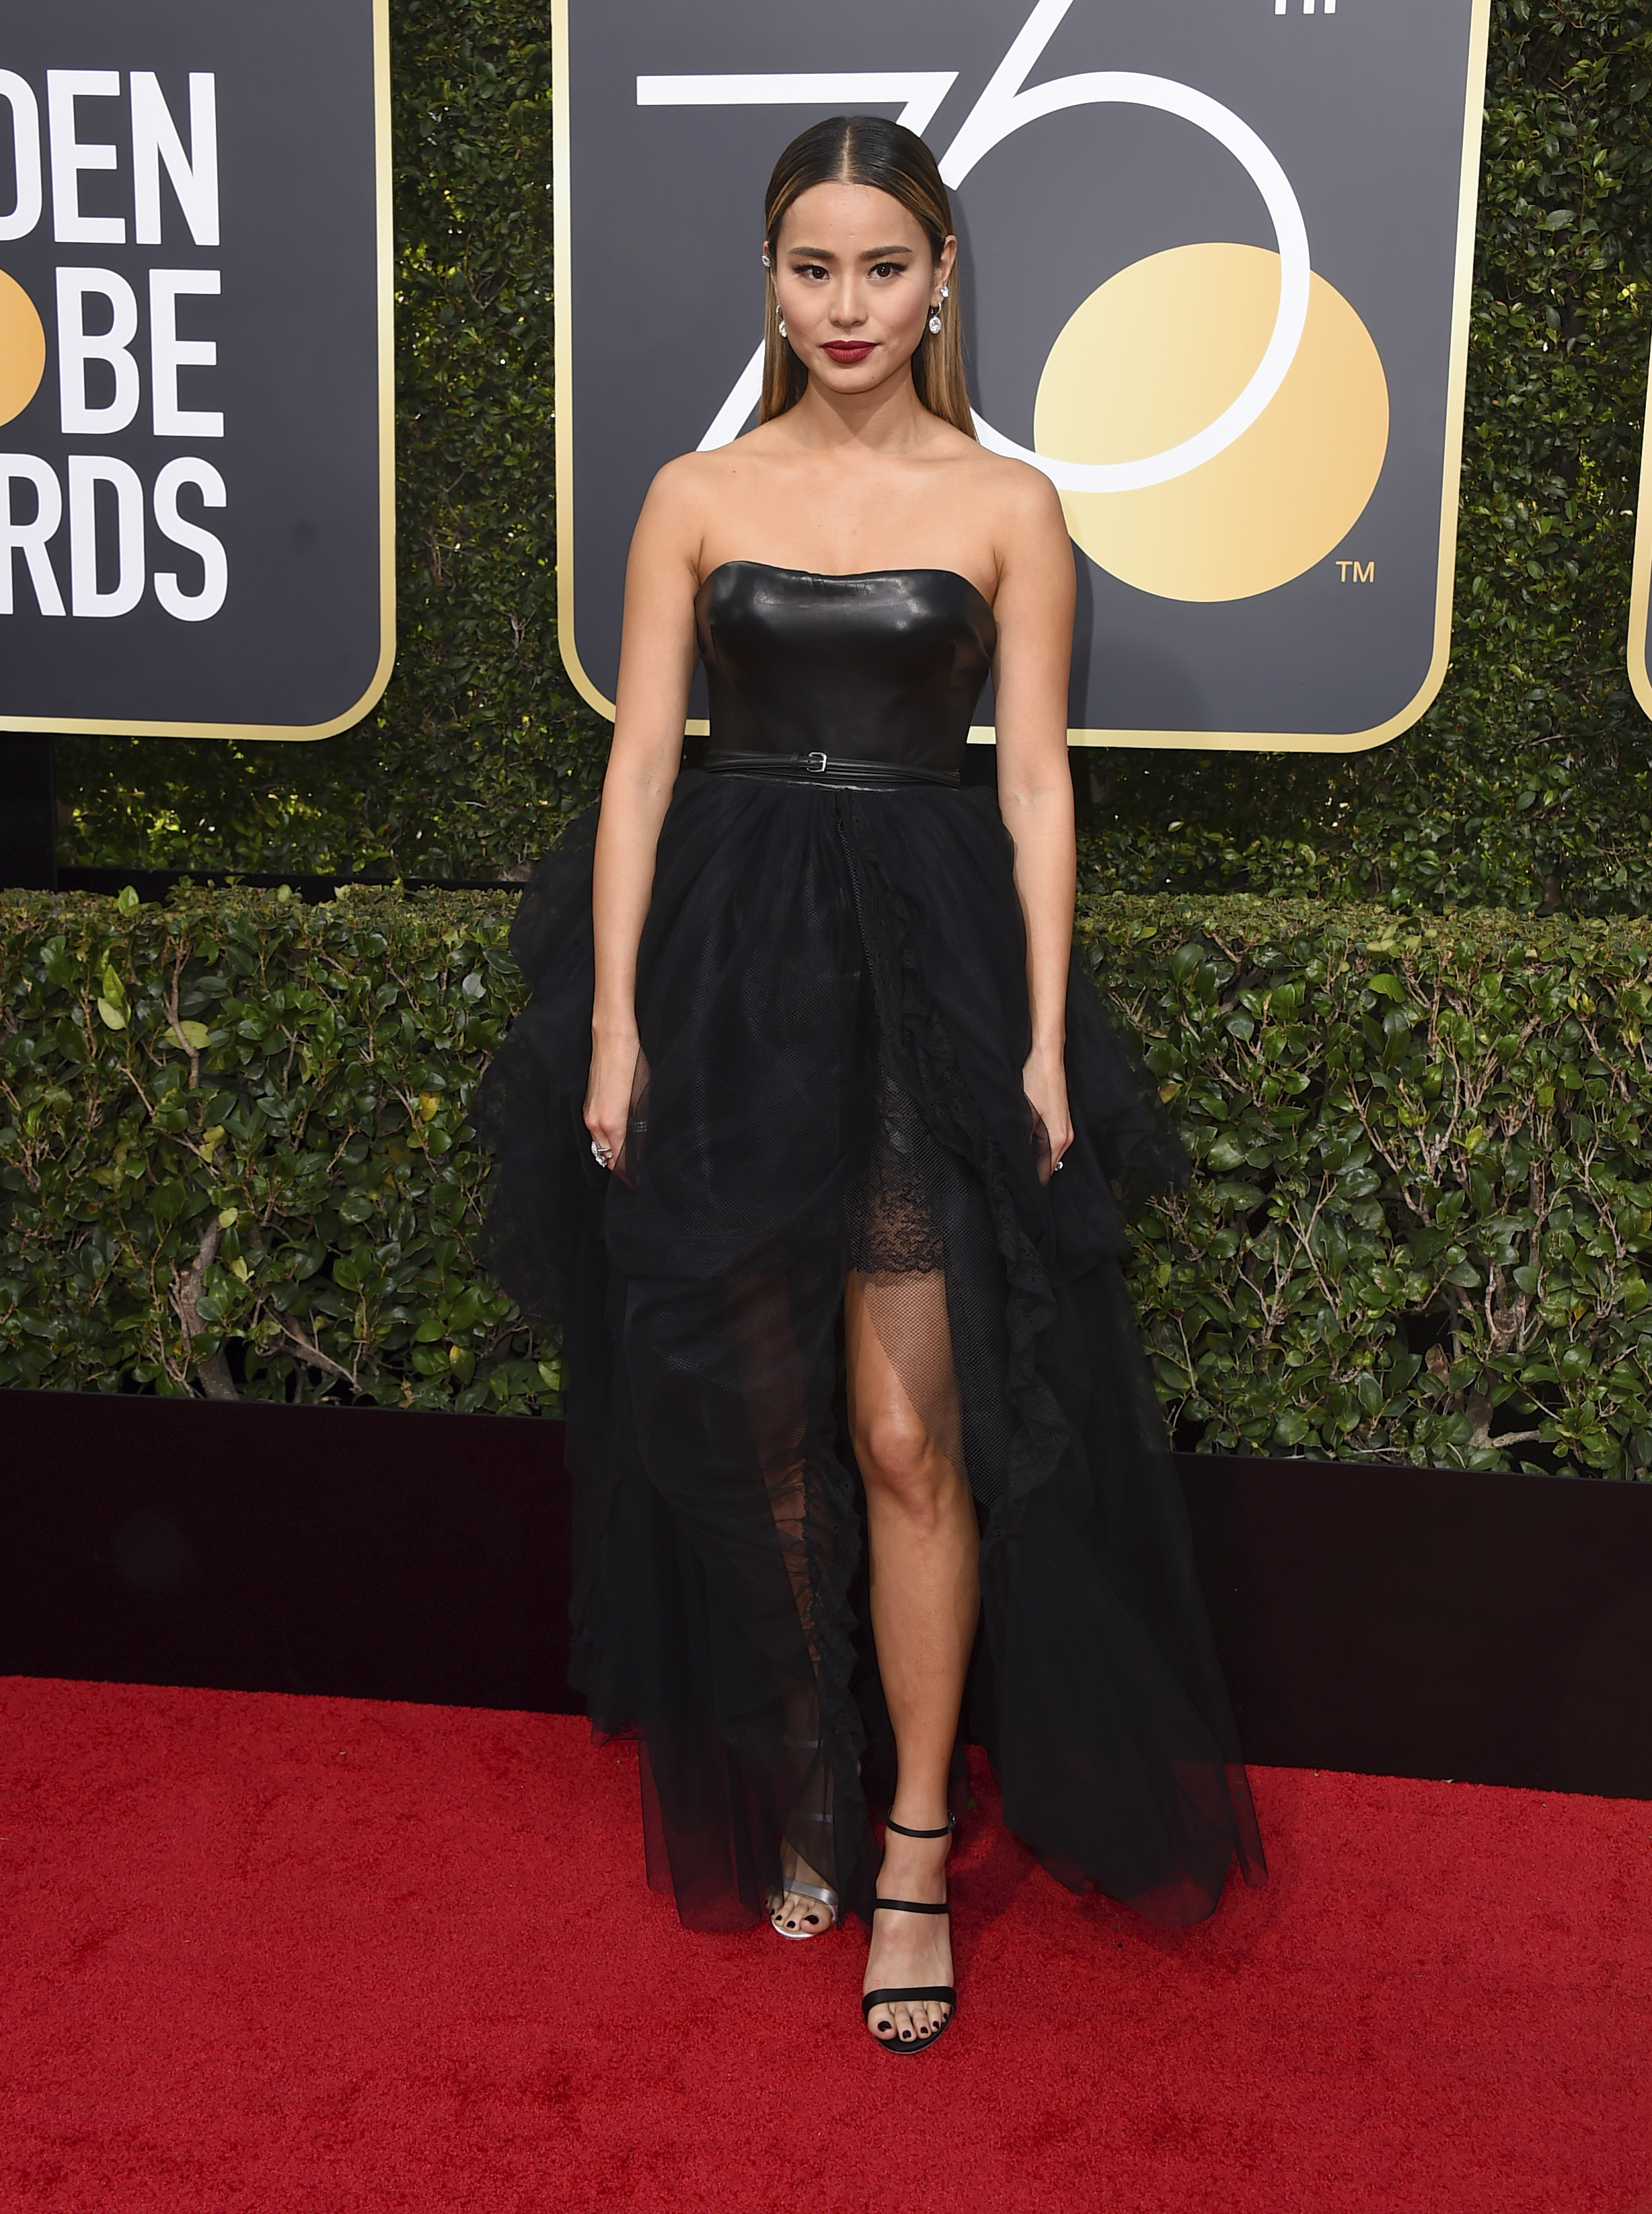 <div class='meta'><div class='origin-logo' data-origin='AP'></div><span class='caption-text' data-credit='Jordan Strauss/Invision/AP'>Jamie Chung arrives at the 75th annual Golden Globe Awards at the Beverly Hilton Hotel on Sunday, Jan. 7, 2018, in Beverly Hills, Calif.</span></div>